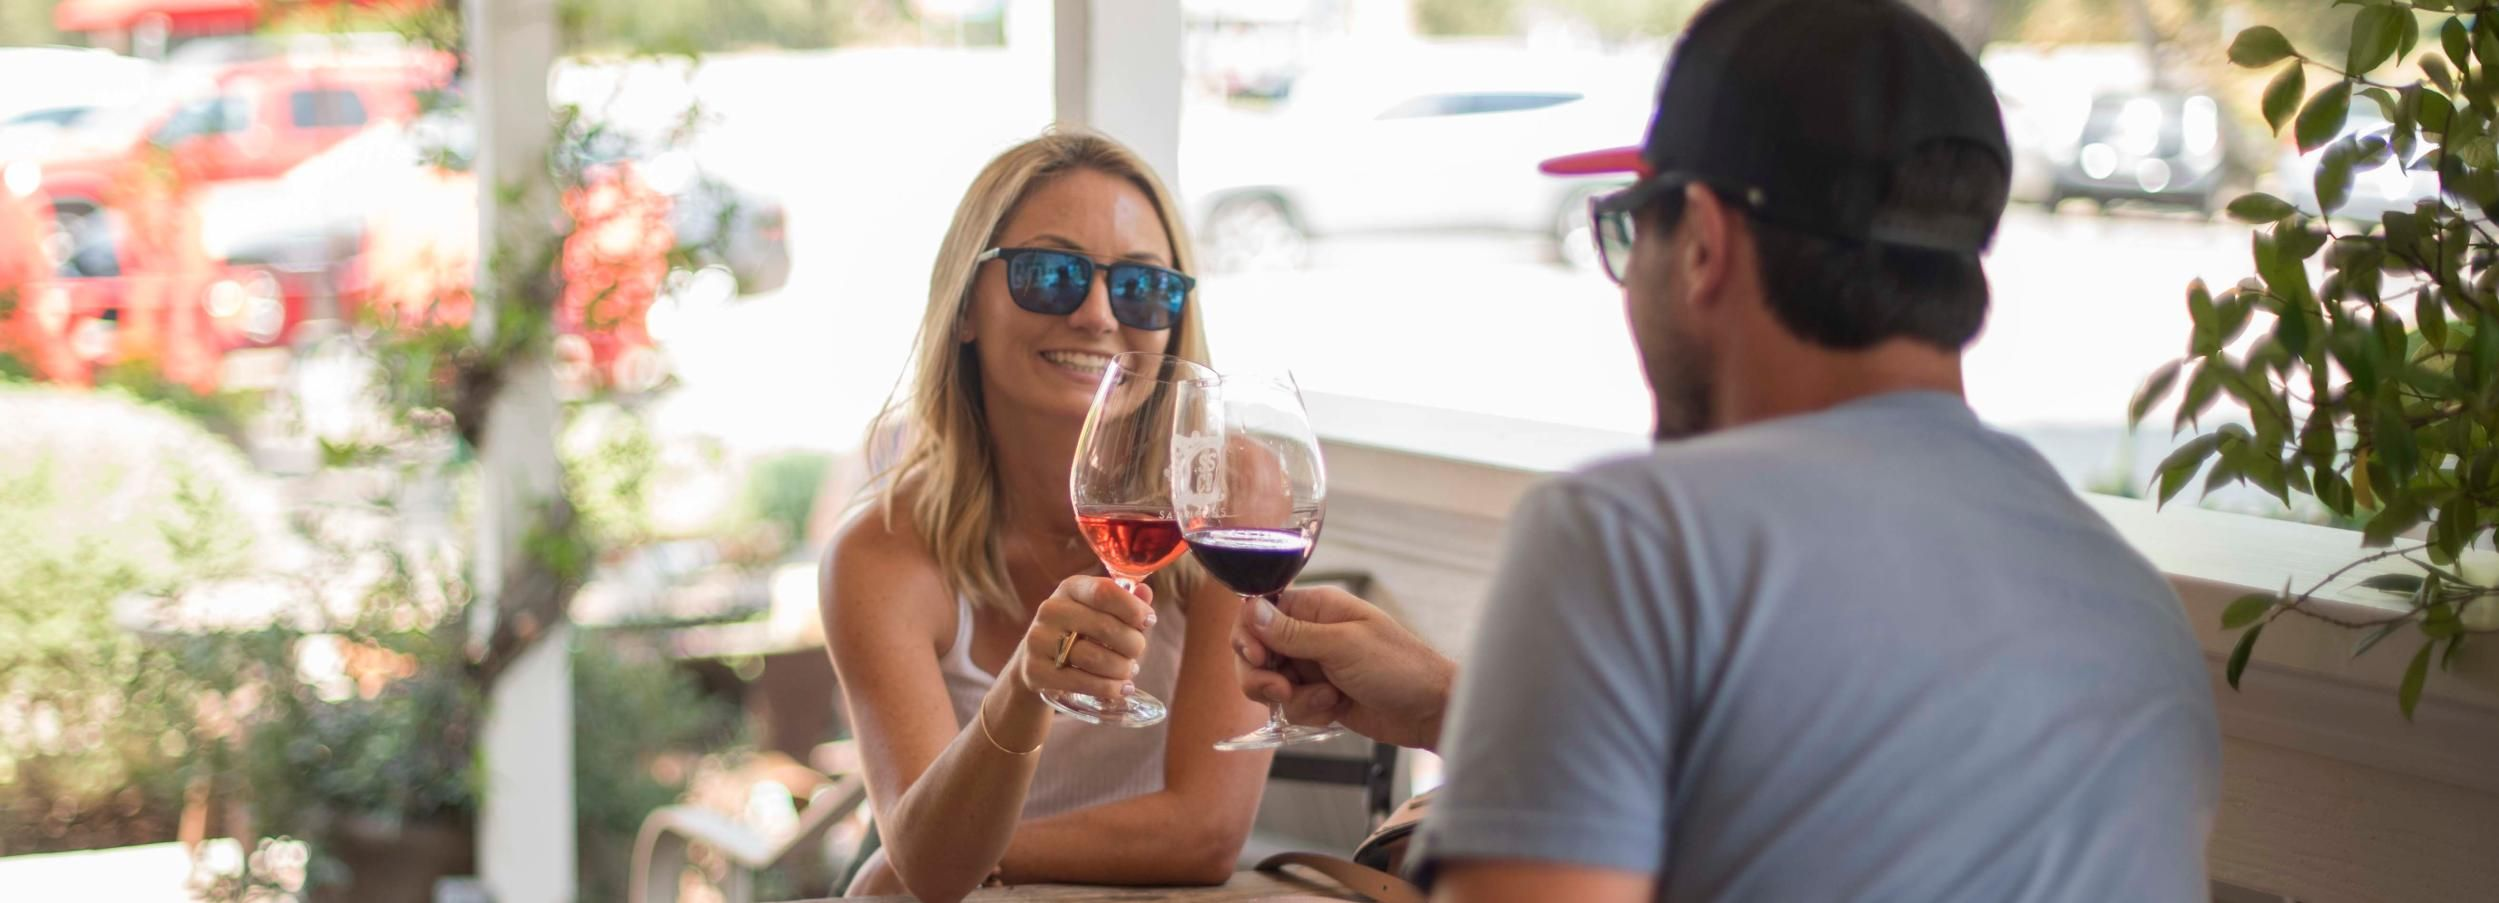 Santa Barbara: Wine Country Tour with Picnic Lunch